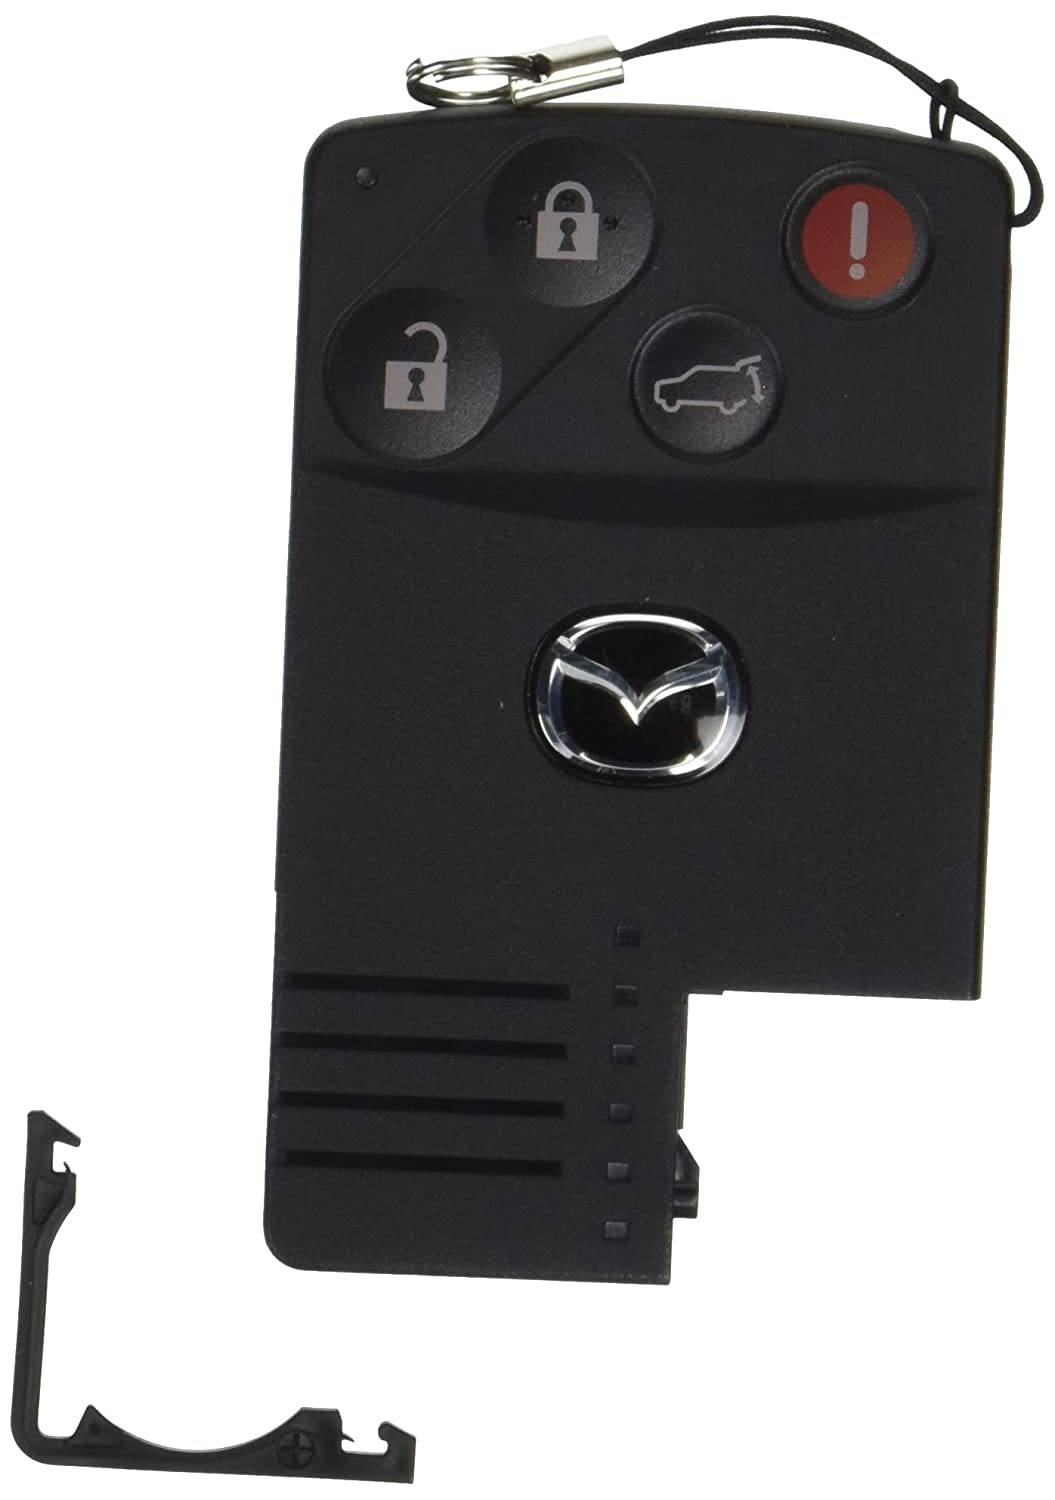 Mazda TDY1-67-5RYA Remote Control Transmitter for Keyless Entry and Alarm System